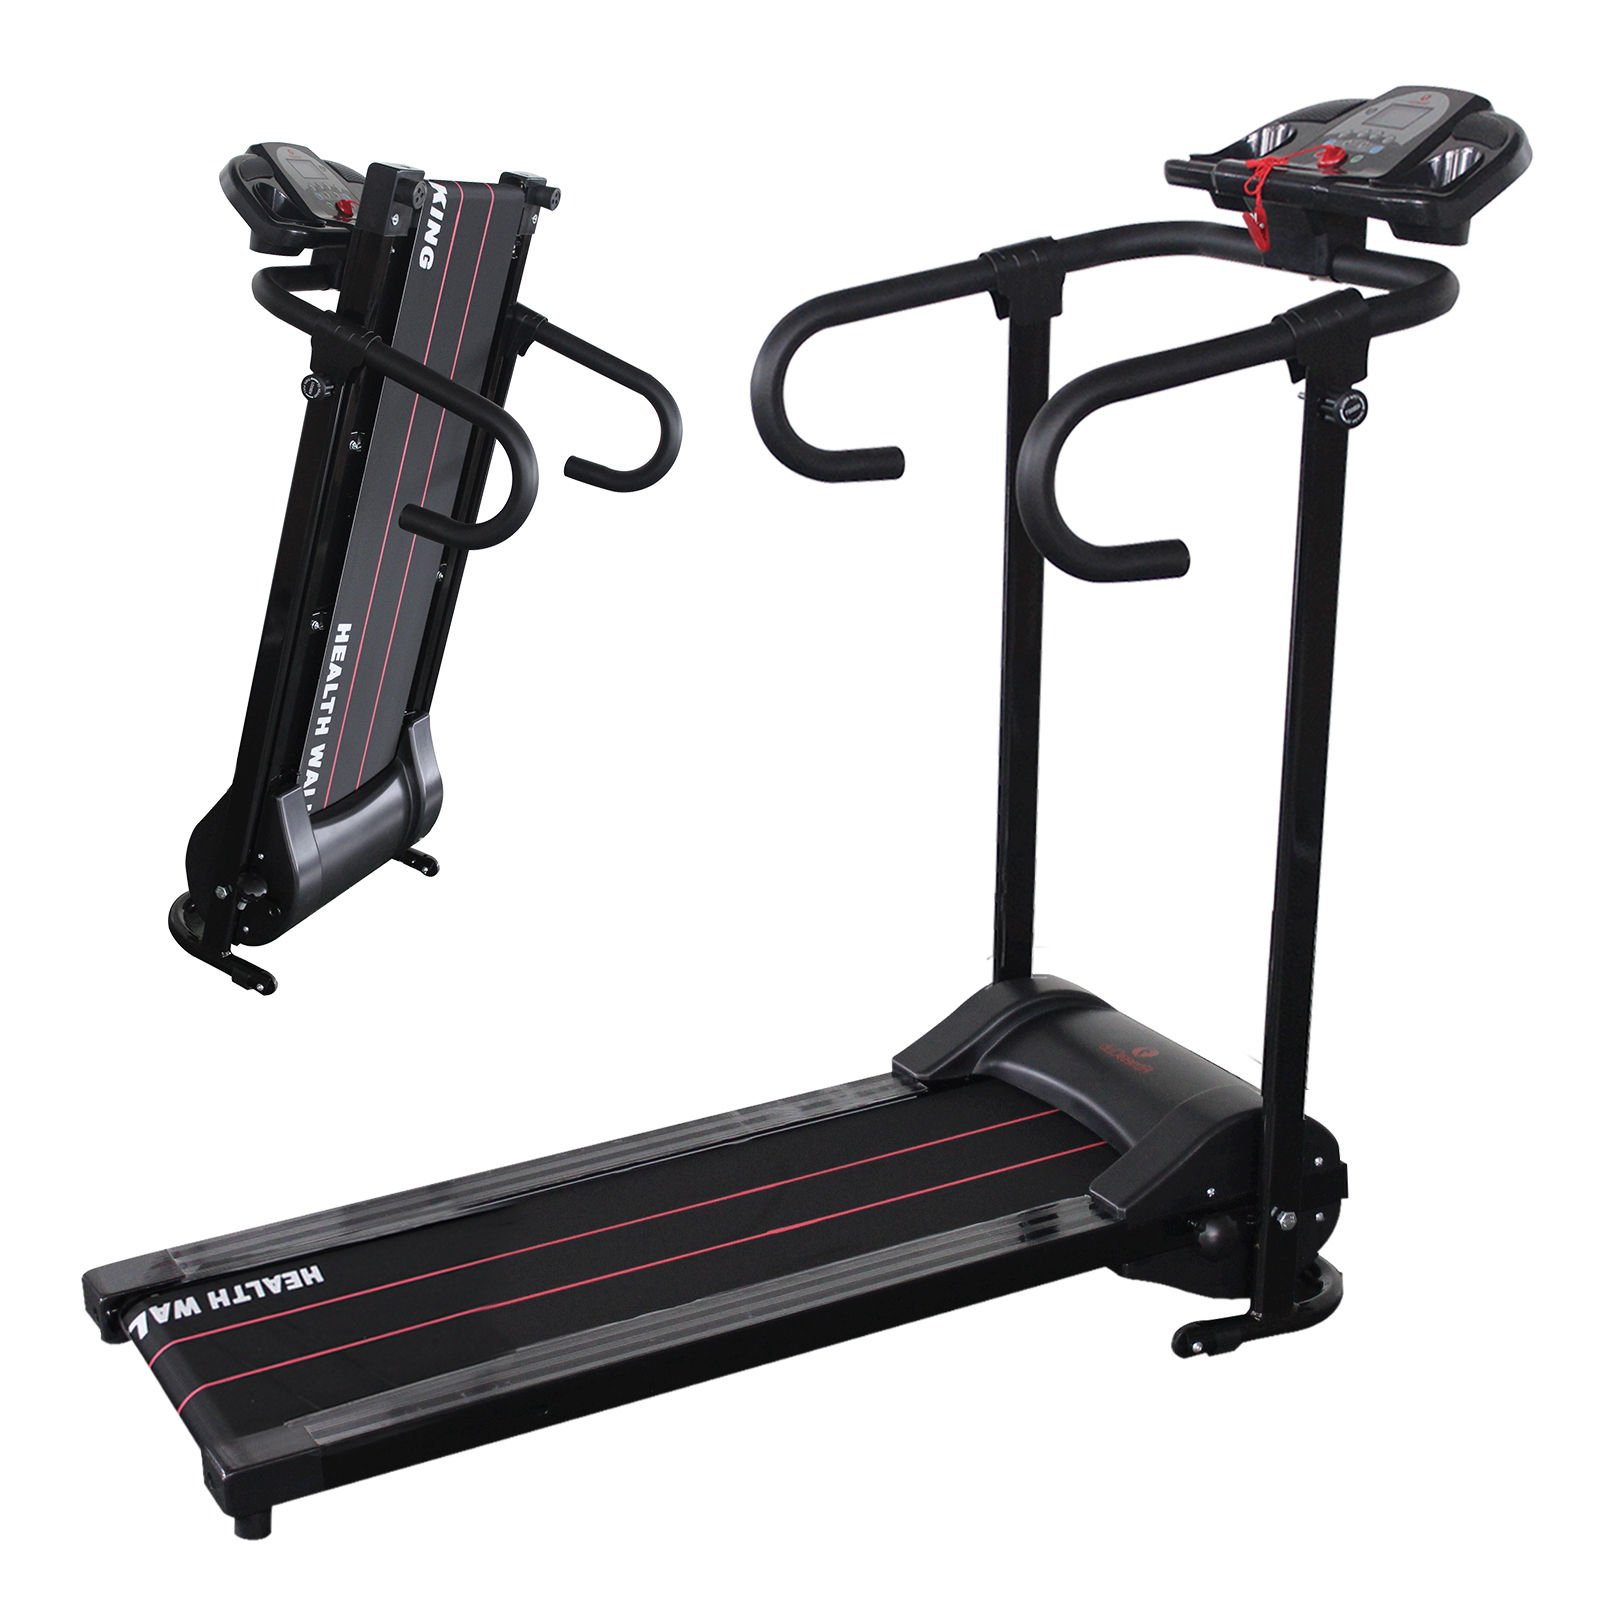 Portable 500W Folding Electric Motorized Treadmill Running Gym Fitness Machine by ZETY (Image #2)